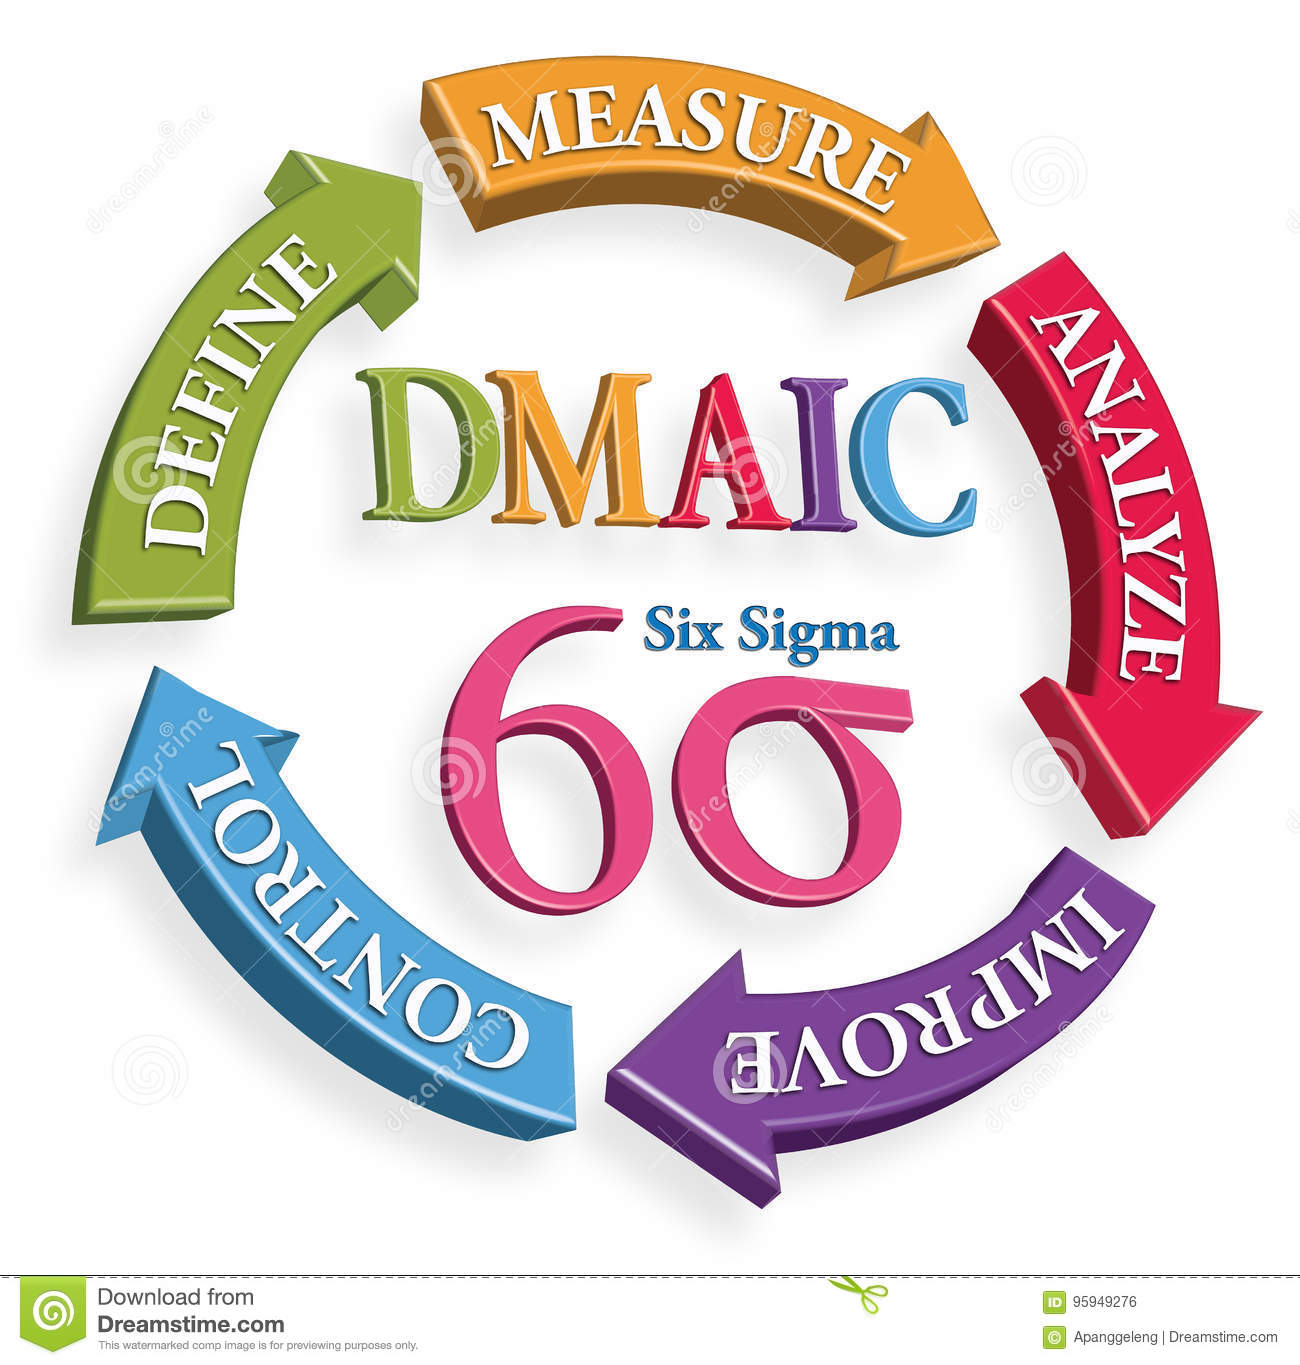 sigma dmaic six tools background productivity transparency control improve define measure optional file analyse preview